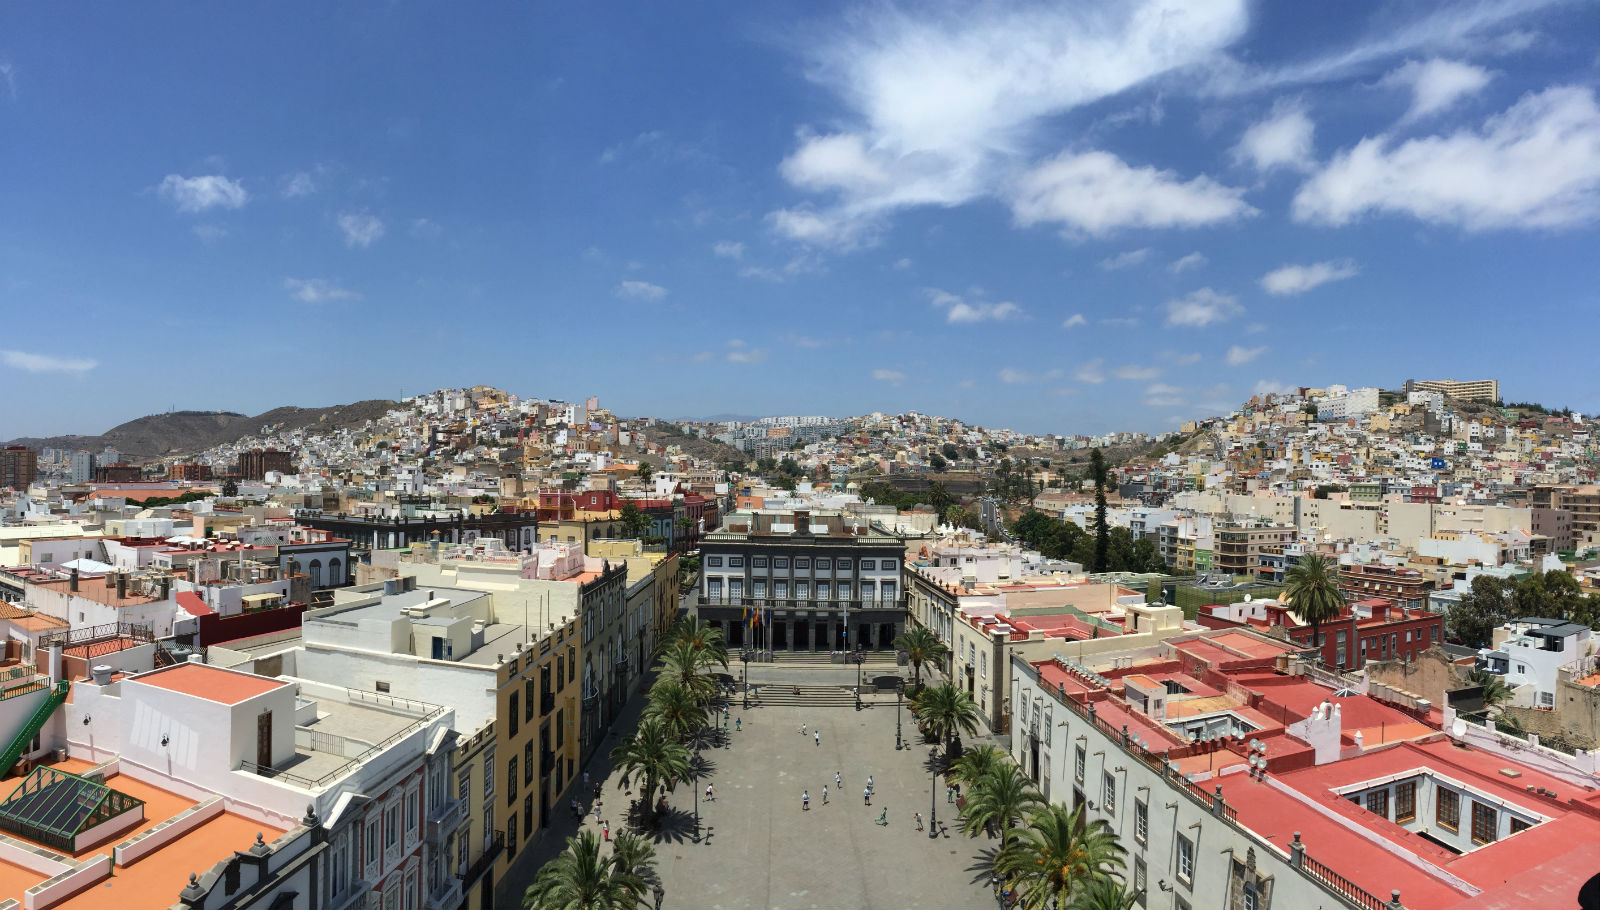 Las Palmas - View from the Cathedral